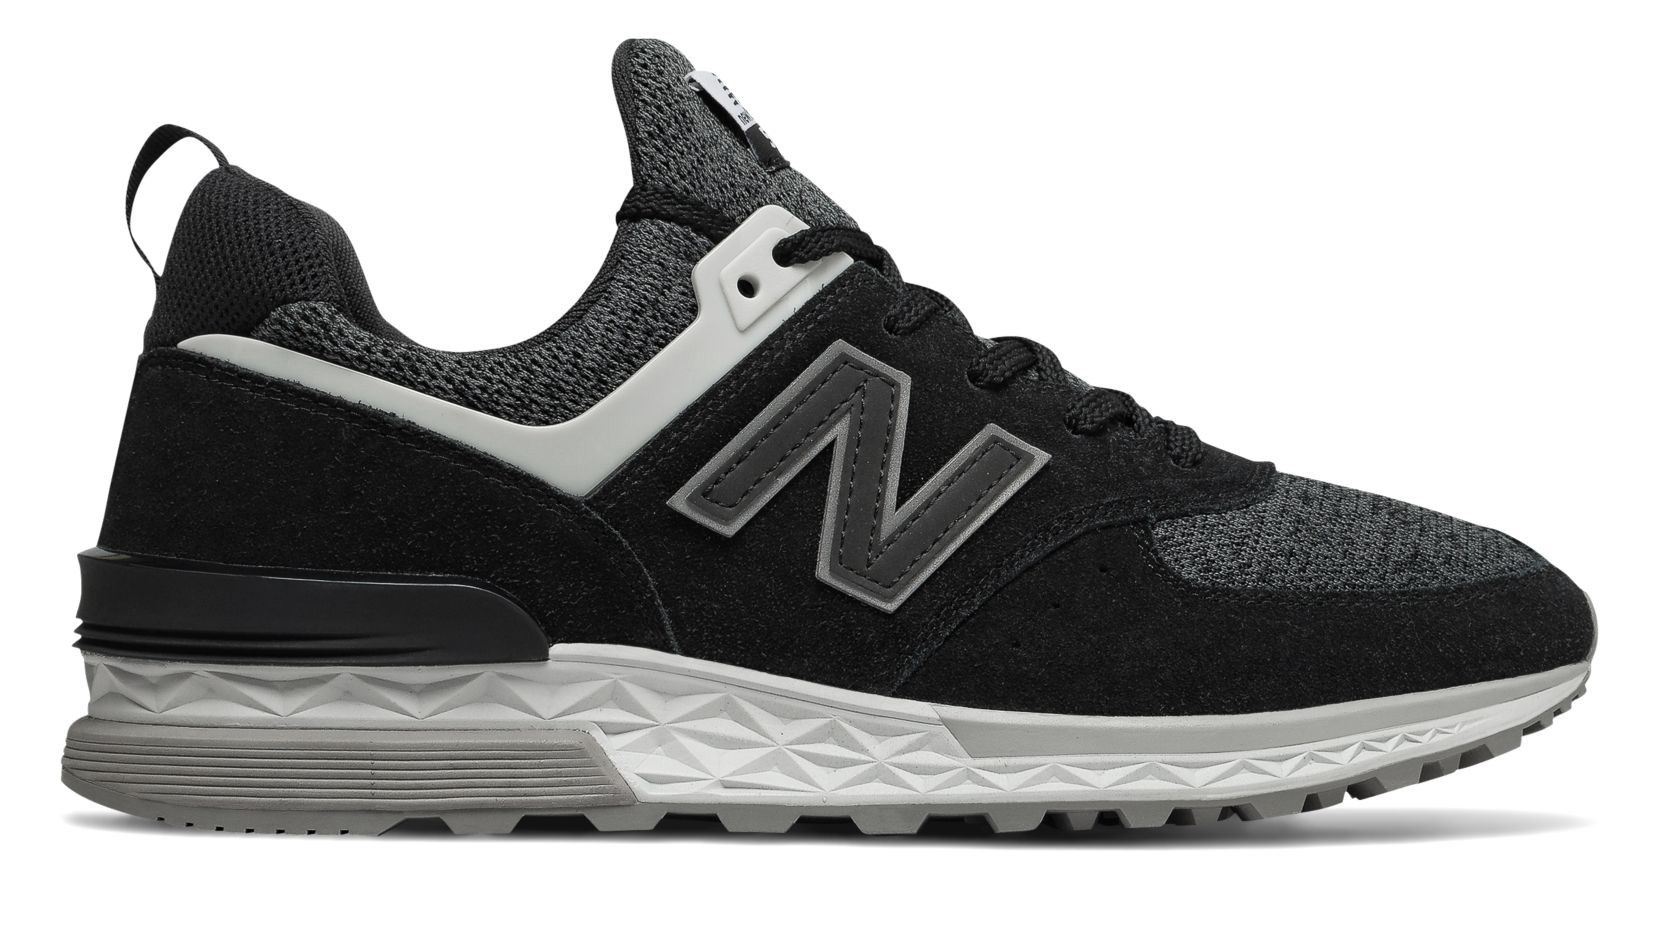 New Balance 574 Sport Black With White 7.5 Casual